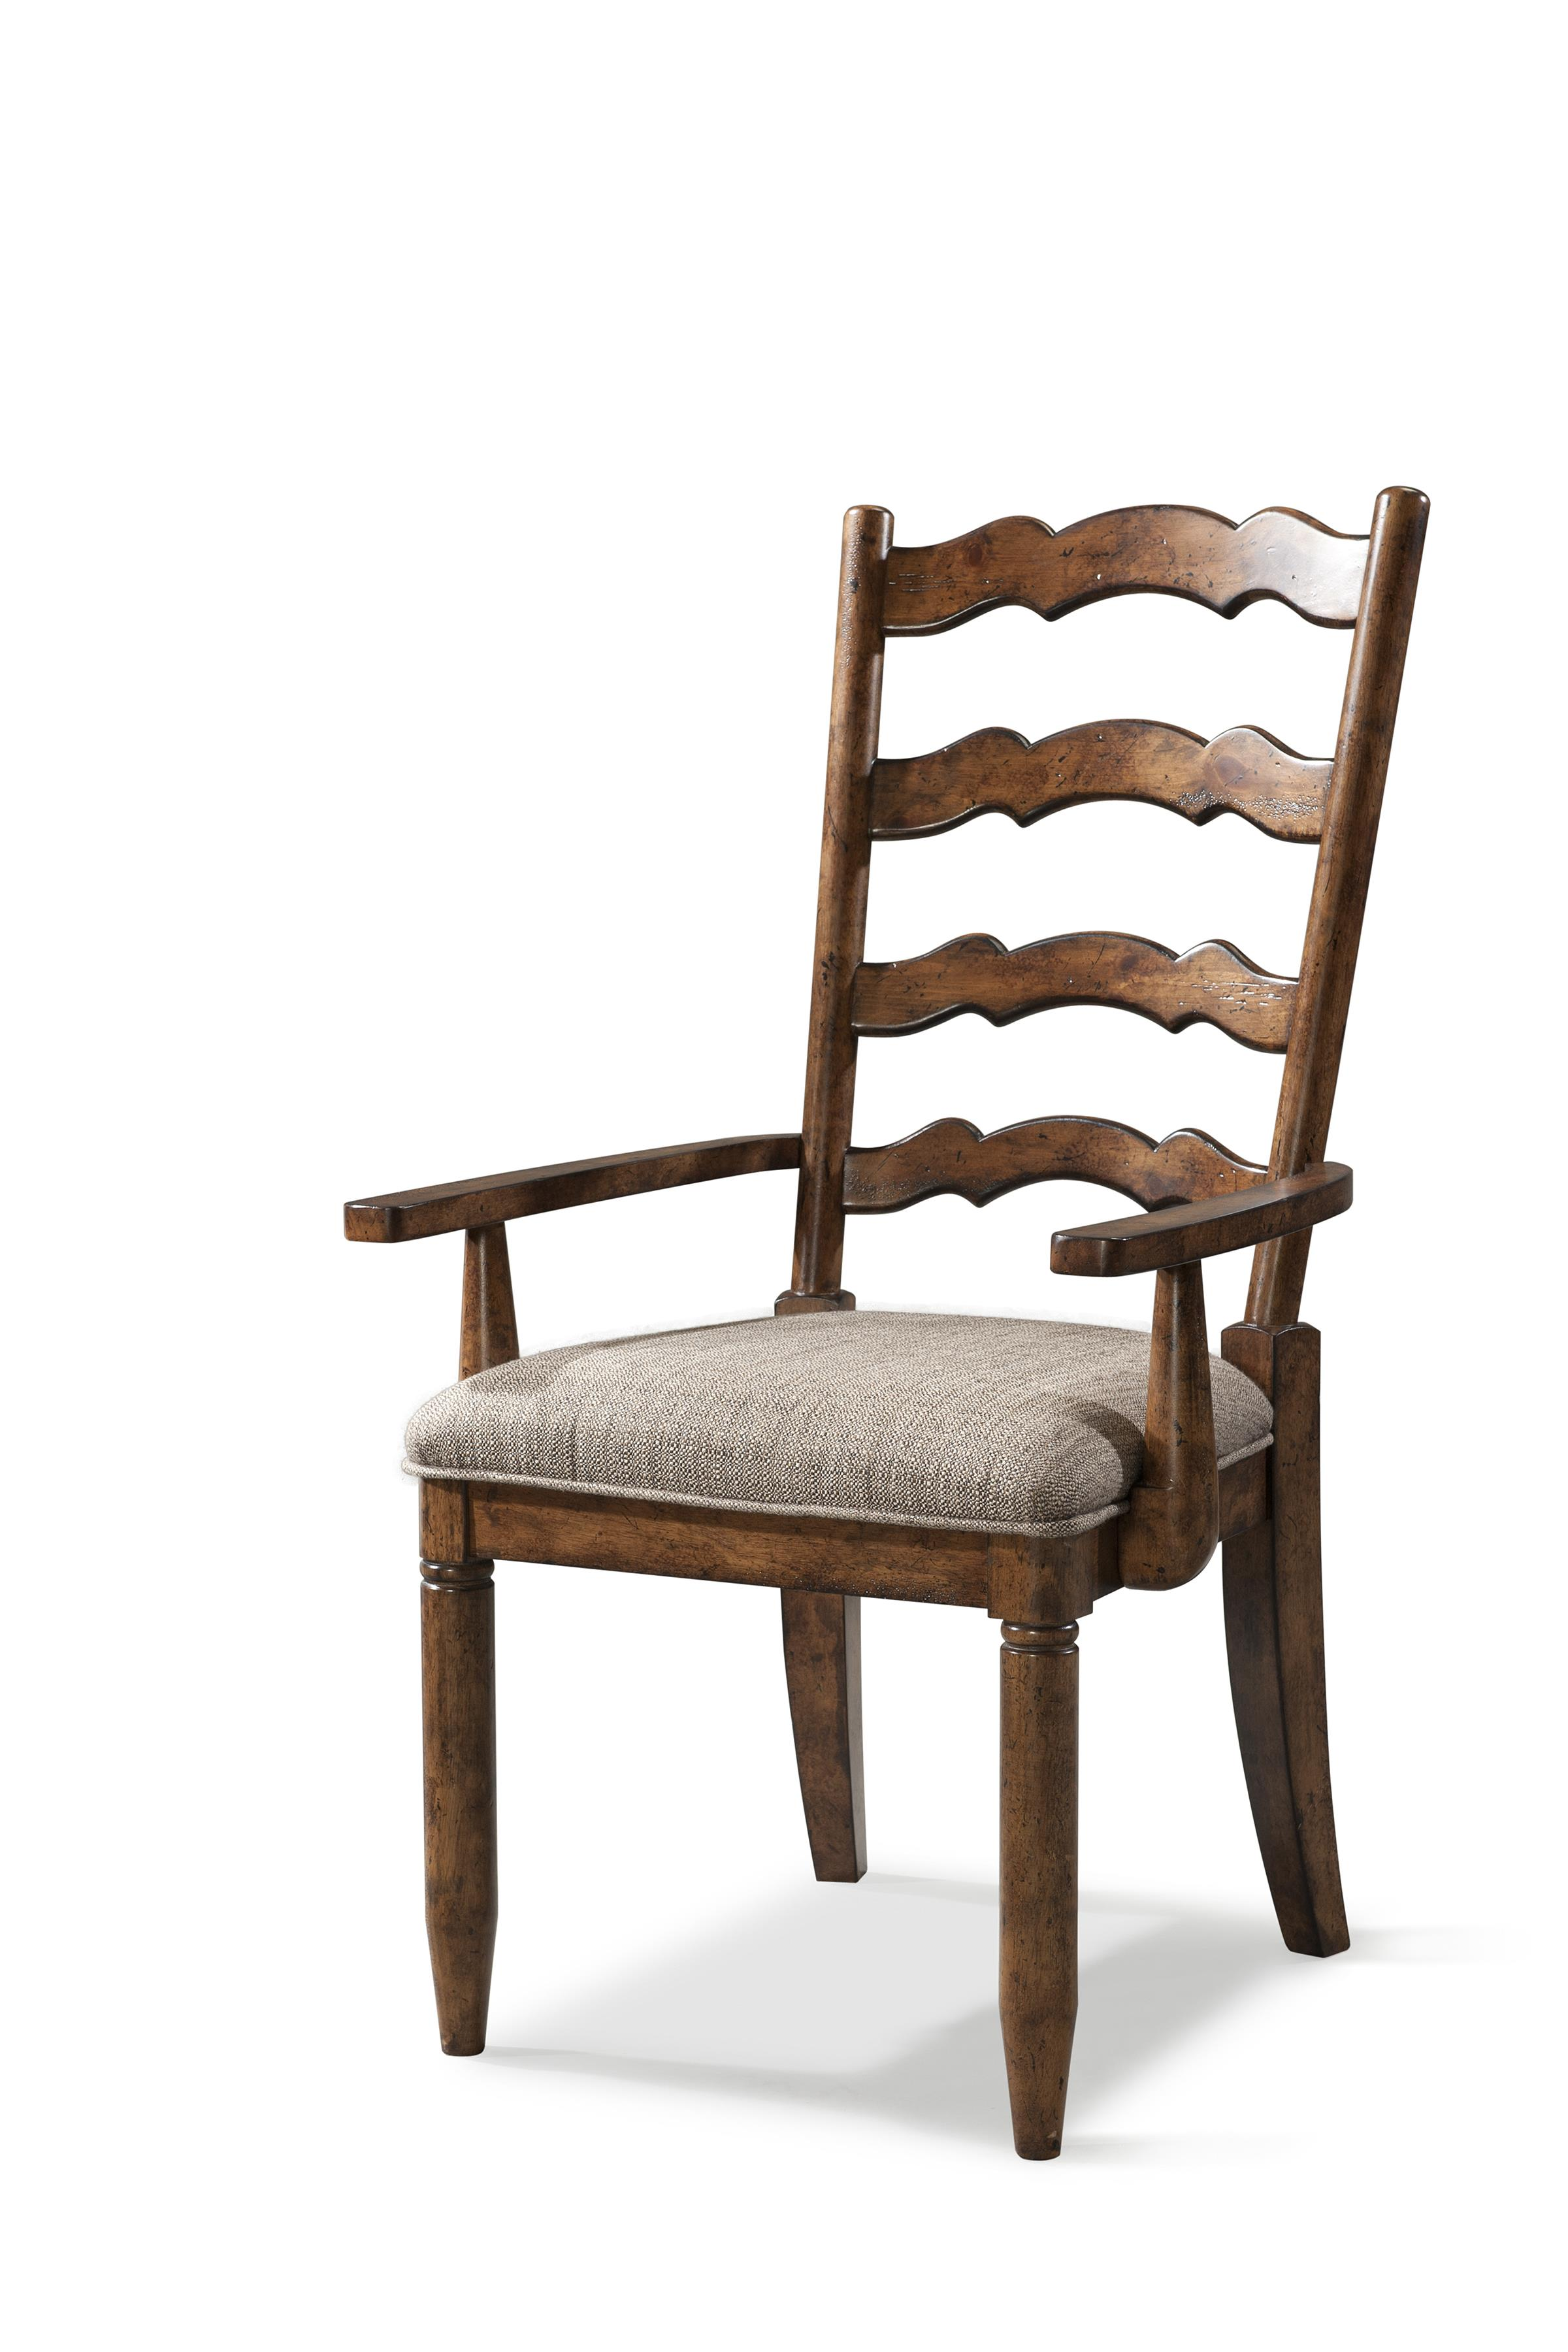 Elliston Place Willow Creek Willow Creek Arm Chair - Item Number: 197696873